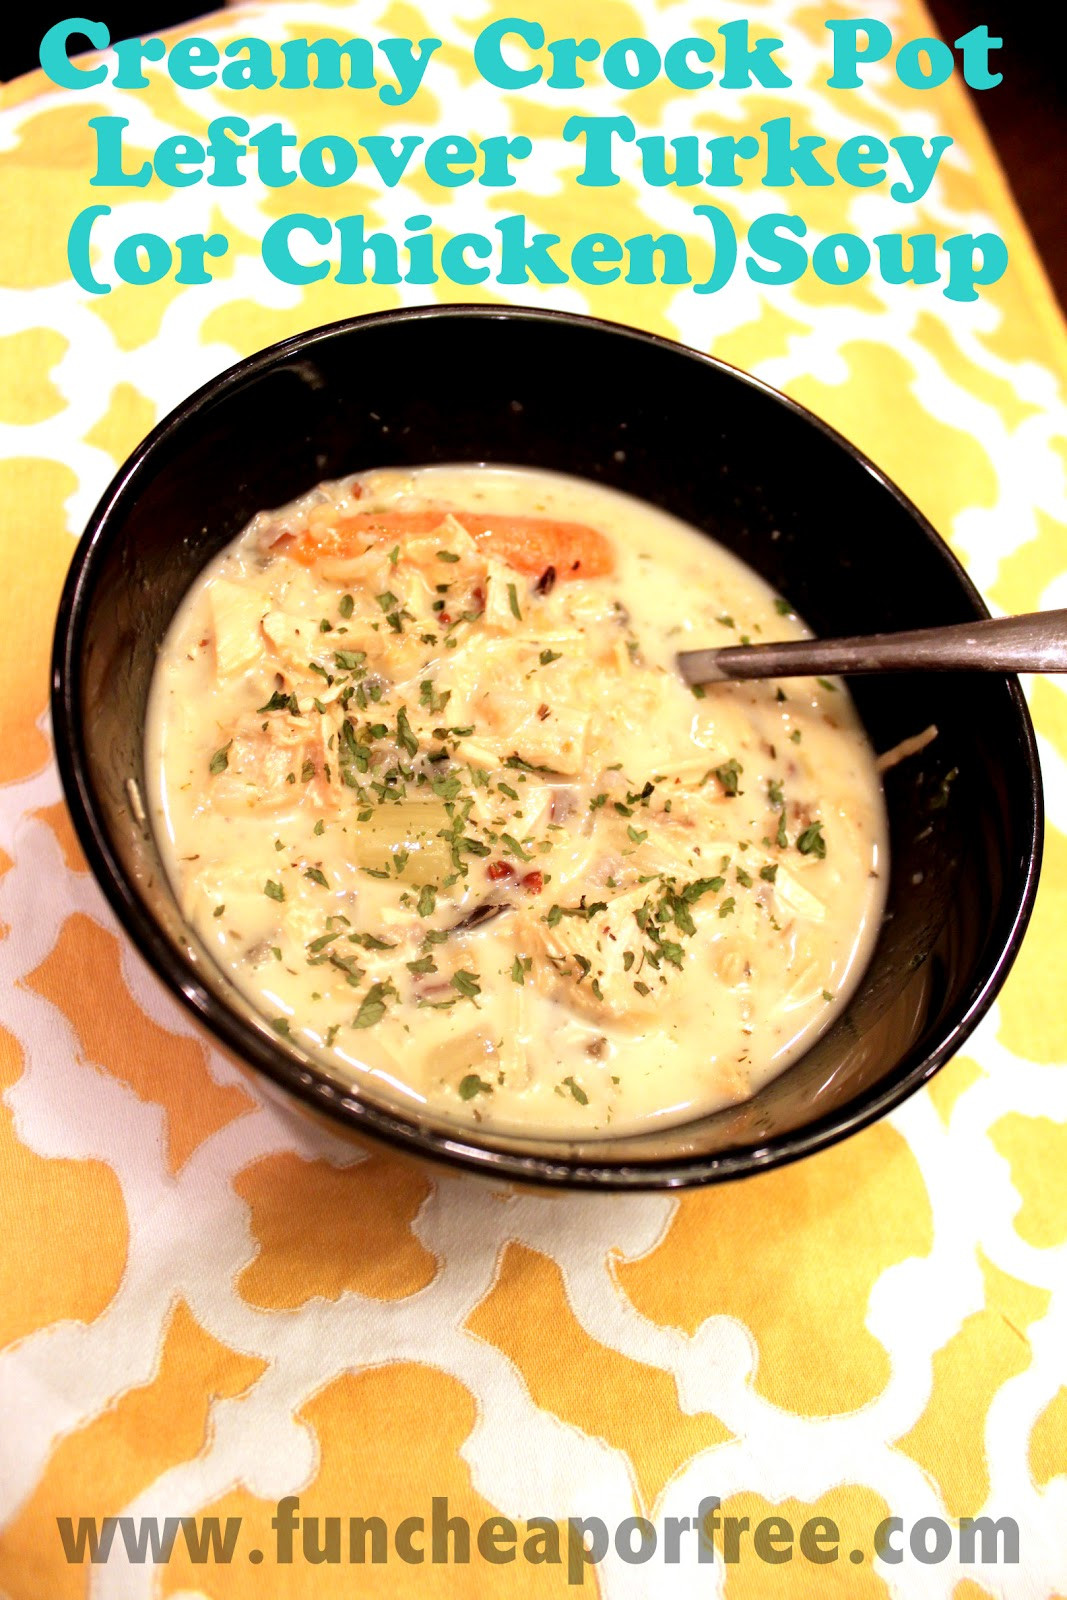 Turkey Soup From Leftover  Creamy Slow Cooker Turkey Soup de from Thanksgiving